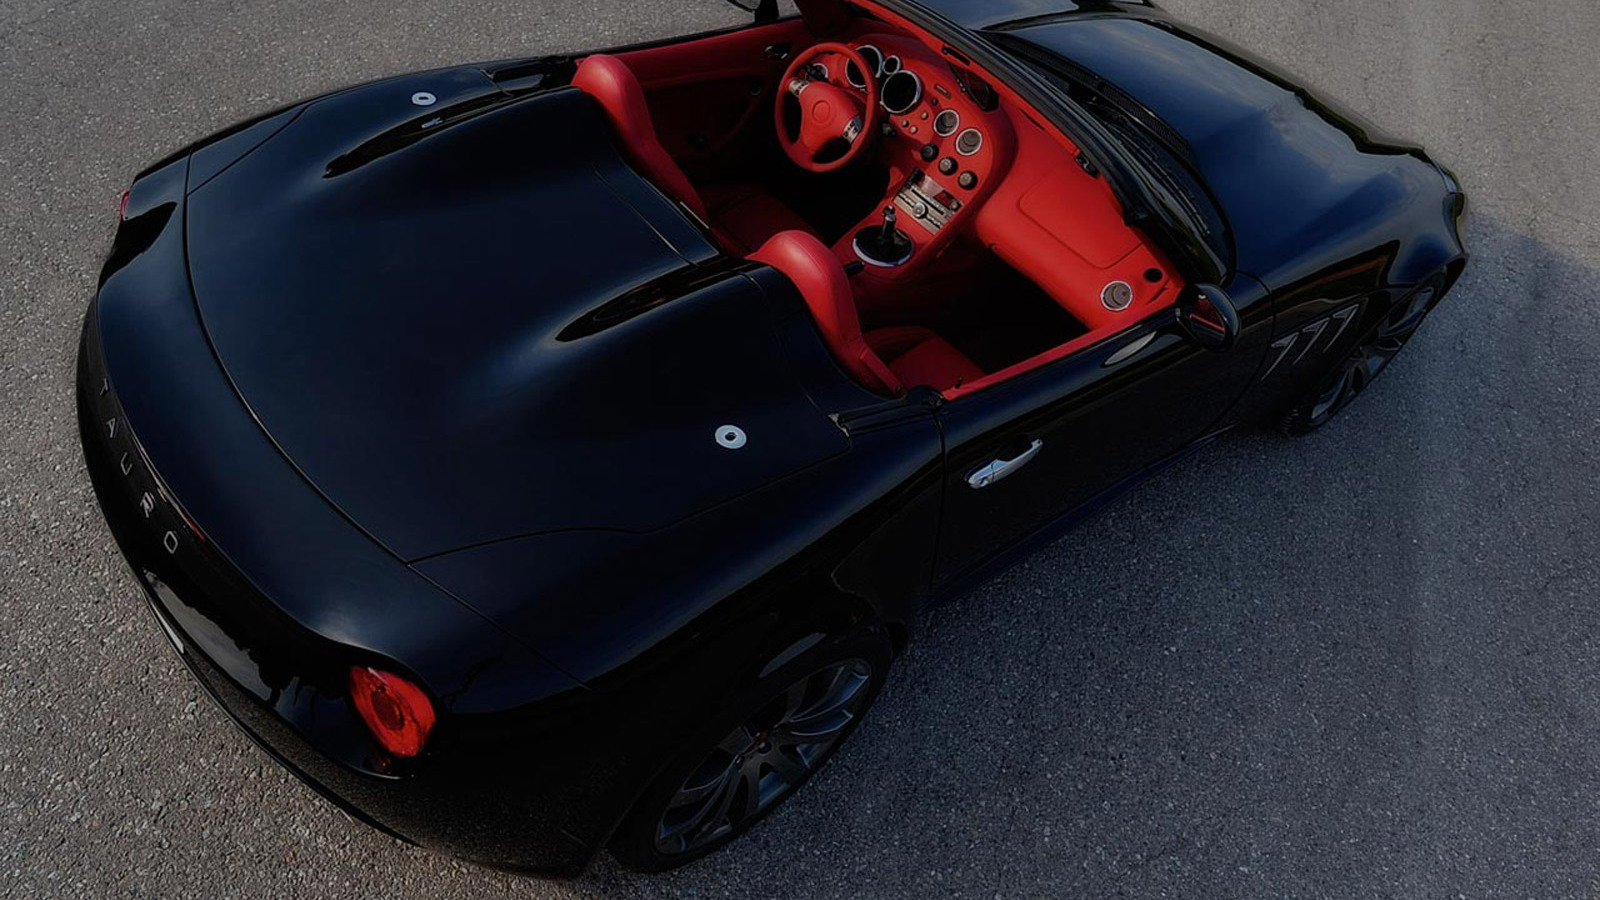 Tauro V8 Spider based on the Pontiac Solstice